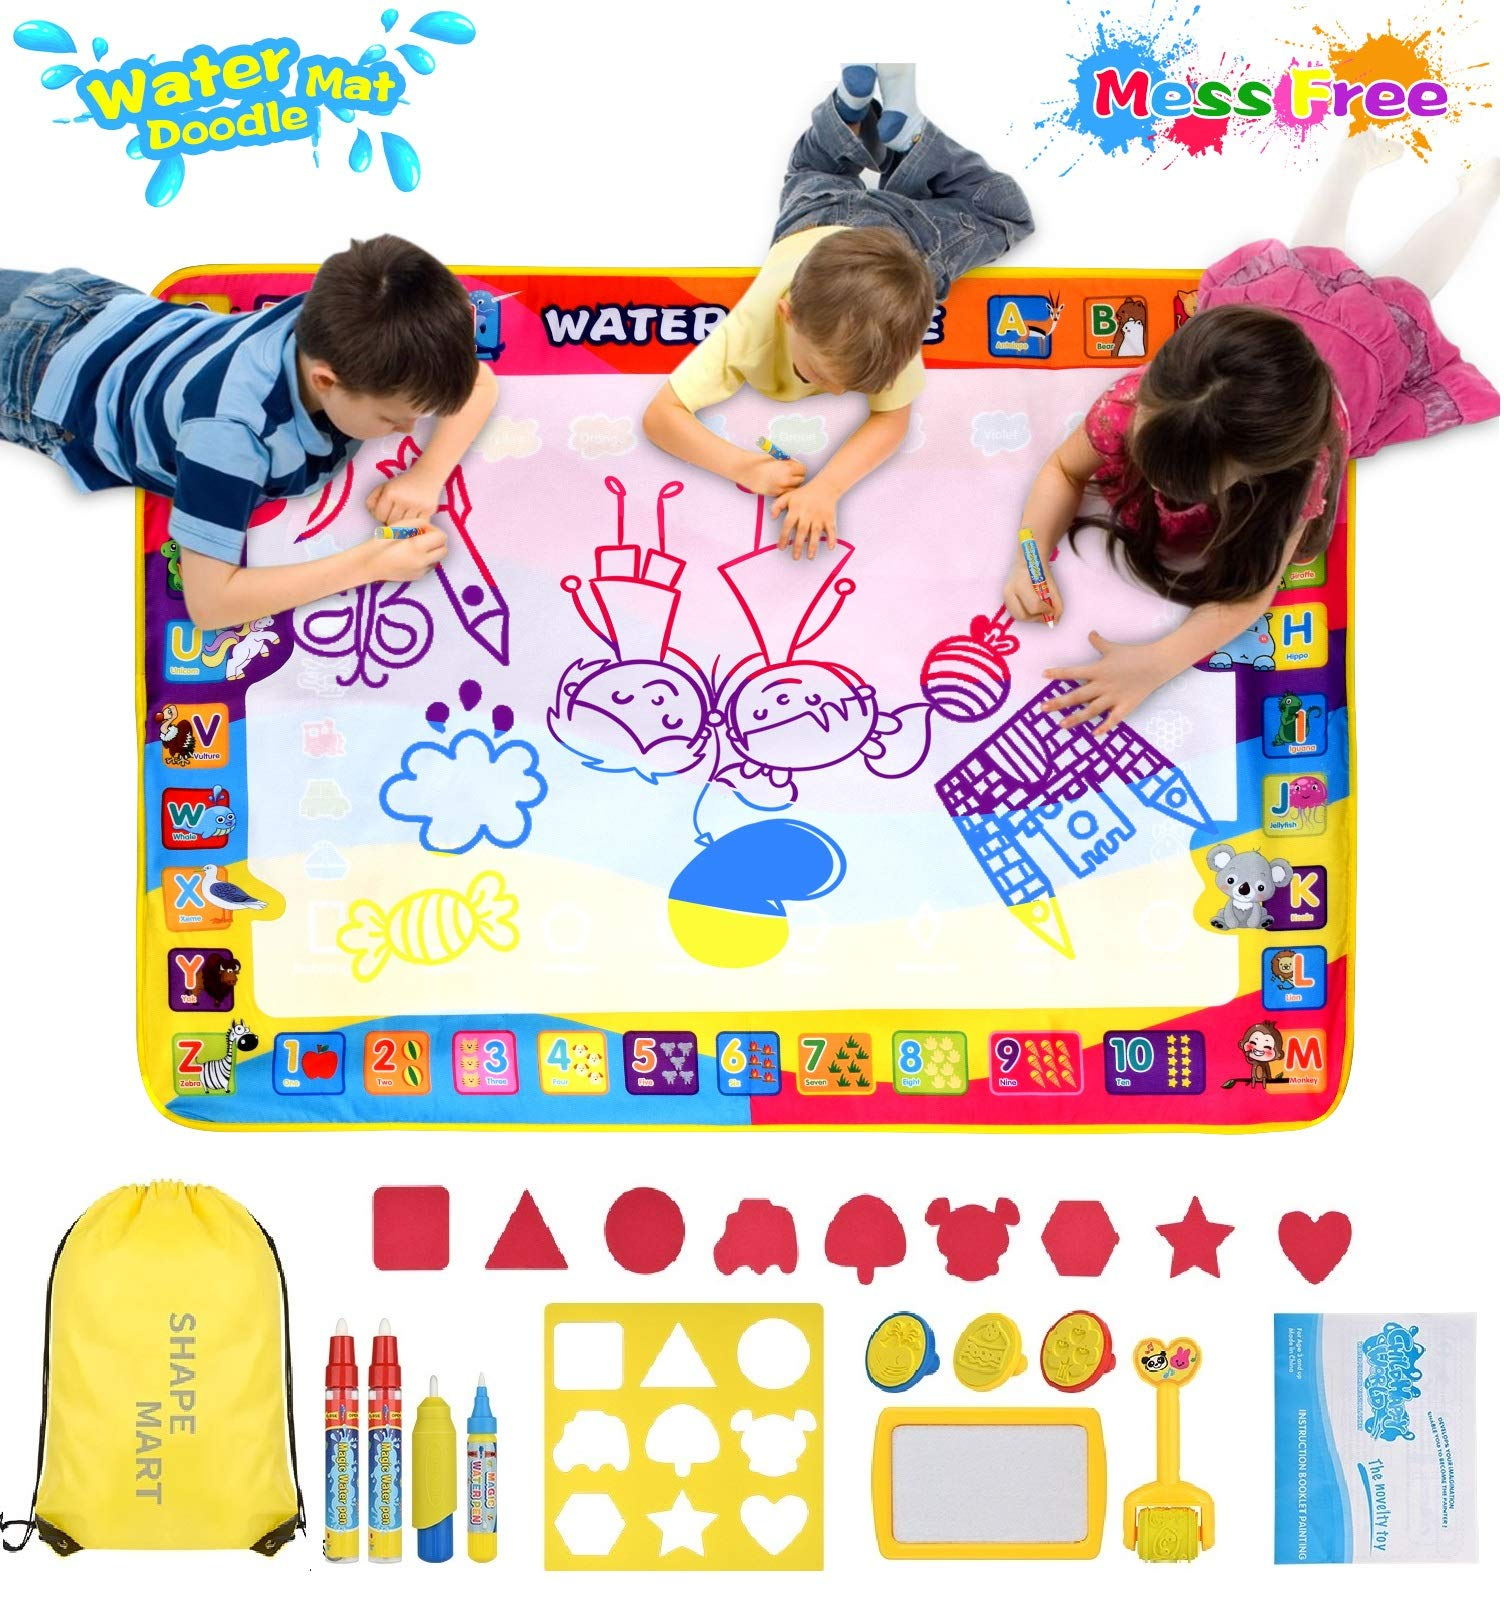 Shape Mart Aqua Magic Mat - Large Drawing Water Doodle Mat for Toddler, Mess Free Paiting Mat with Magic Pens, Educational Toys for Age 2 3 4 5 6 7 8 Years Old by Shape Mart